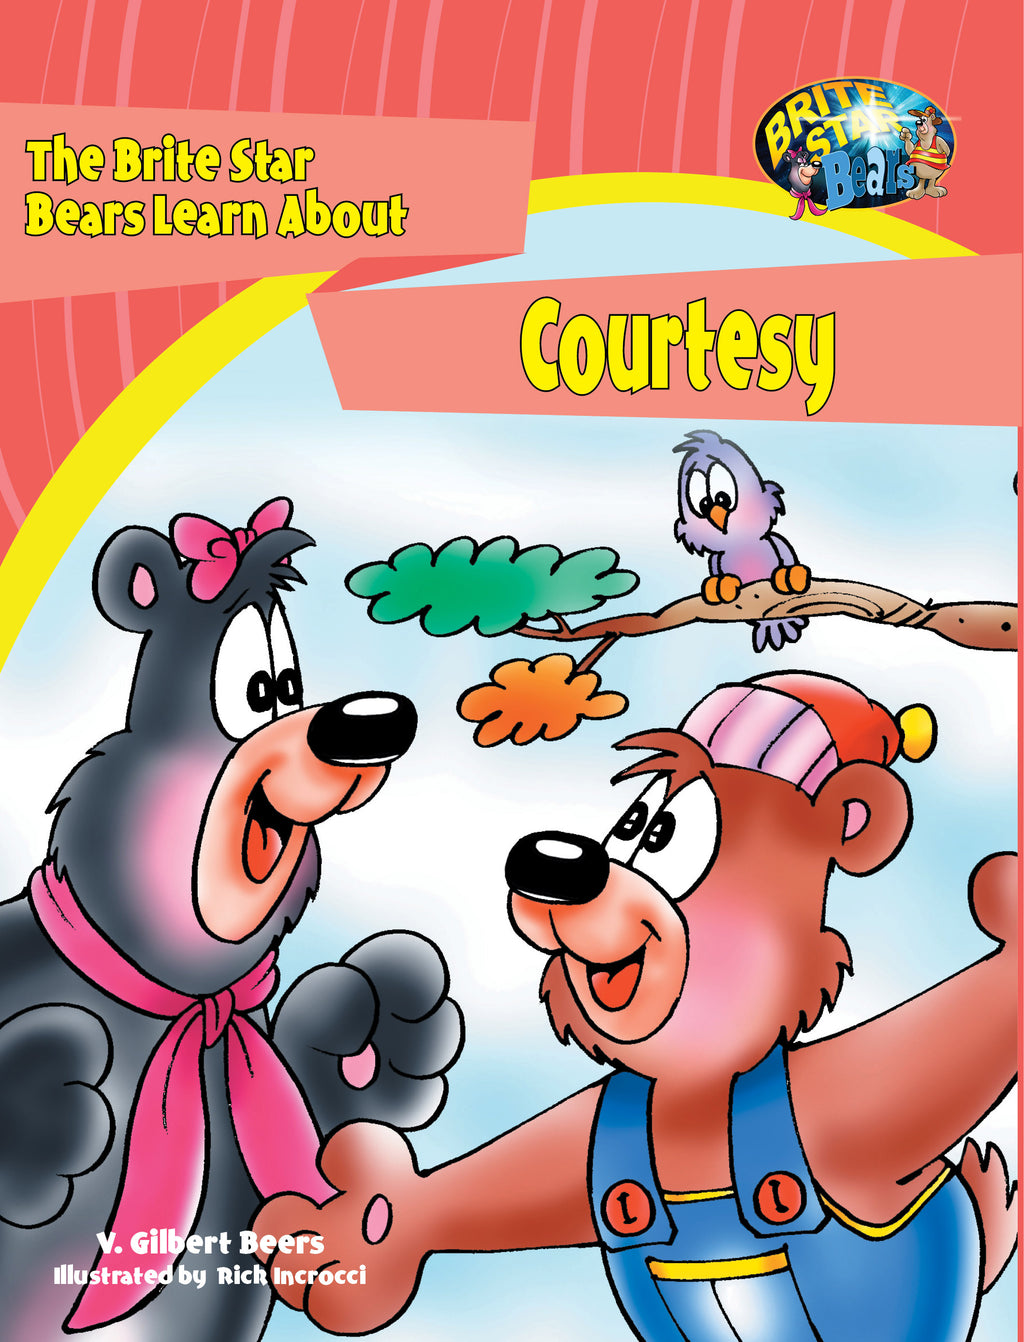 The Bears of Brite Star Learn About Courtesy